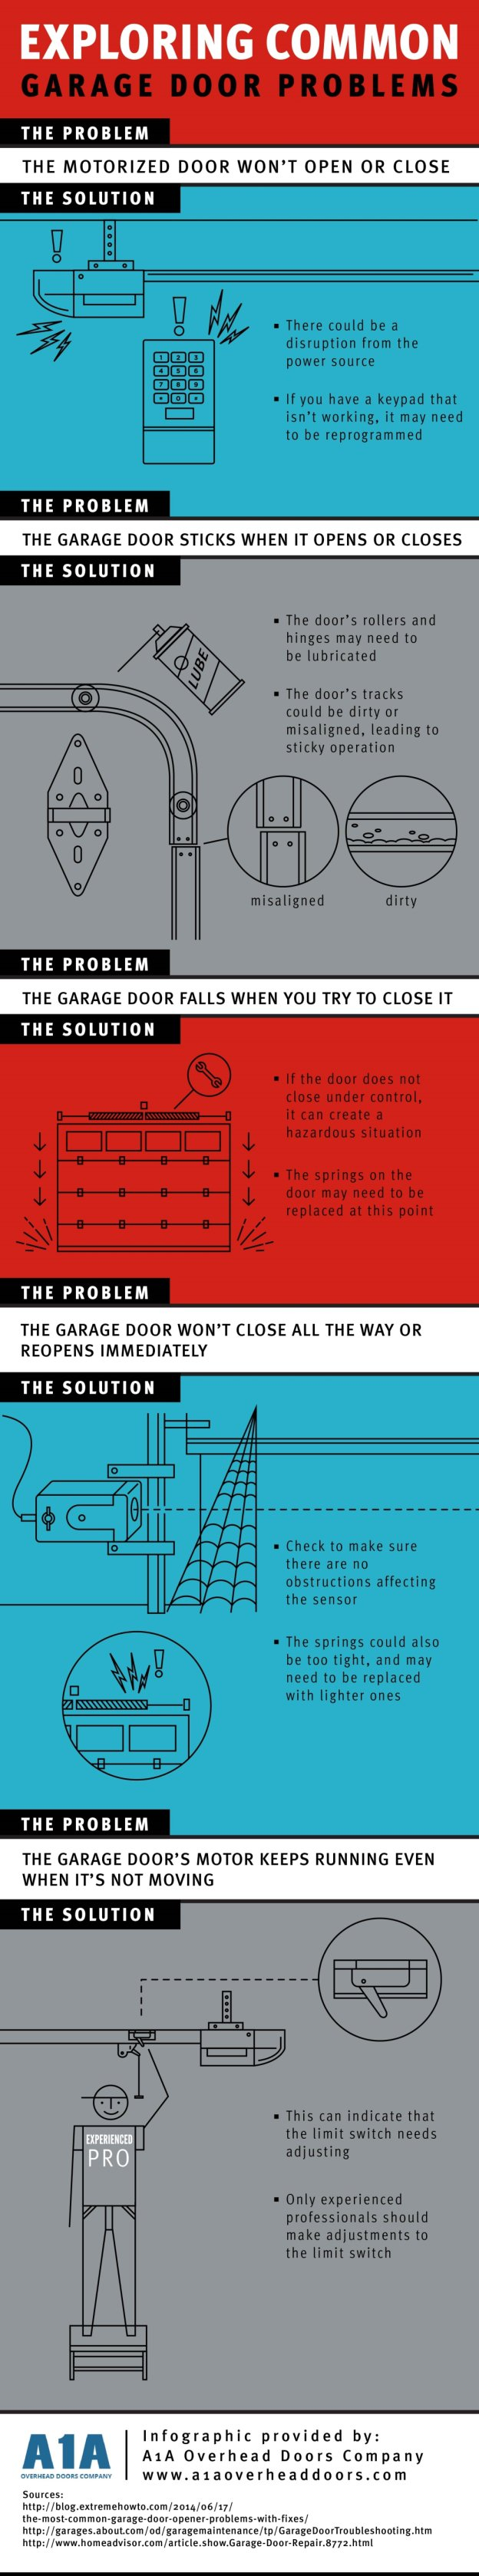 Exploring Common Garage Door Problems Infographic A1a